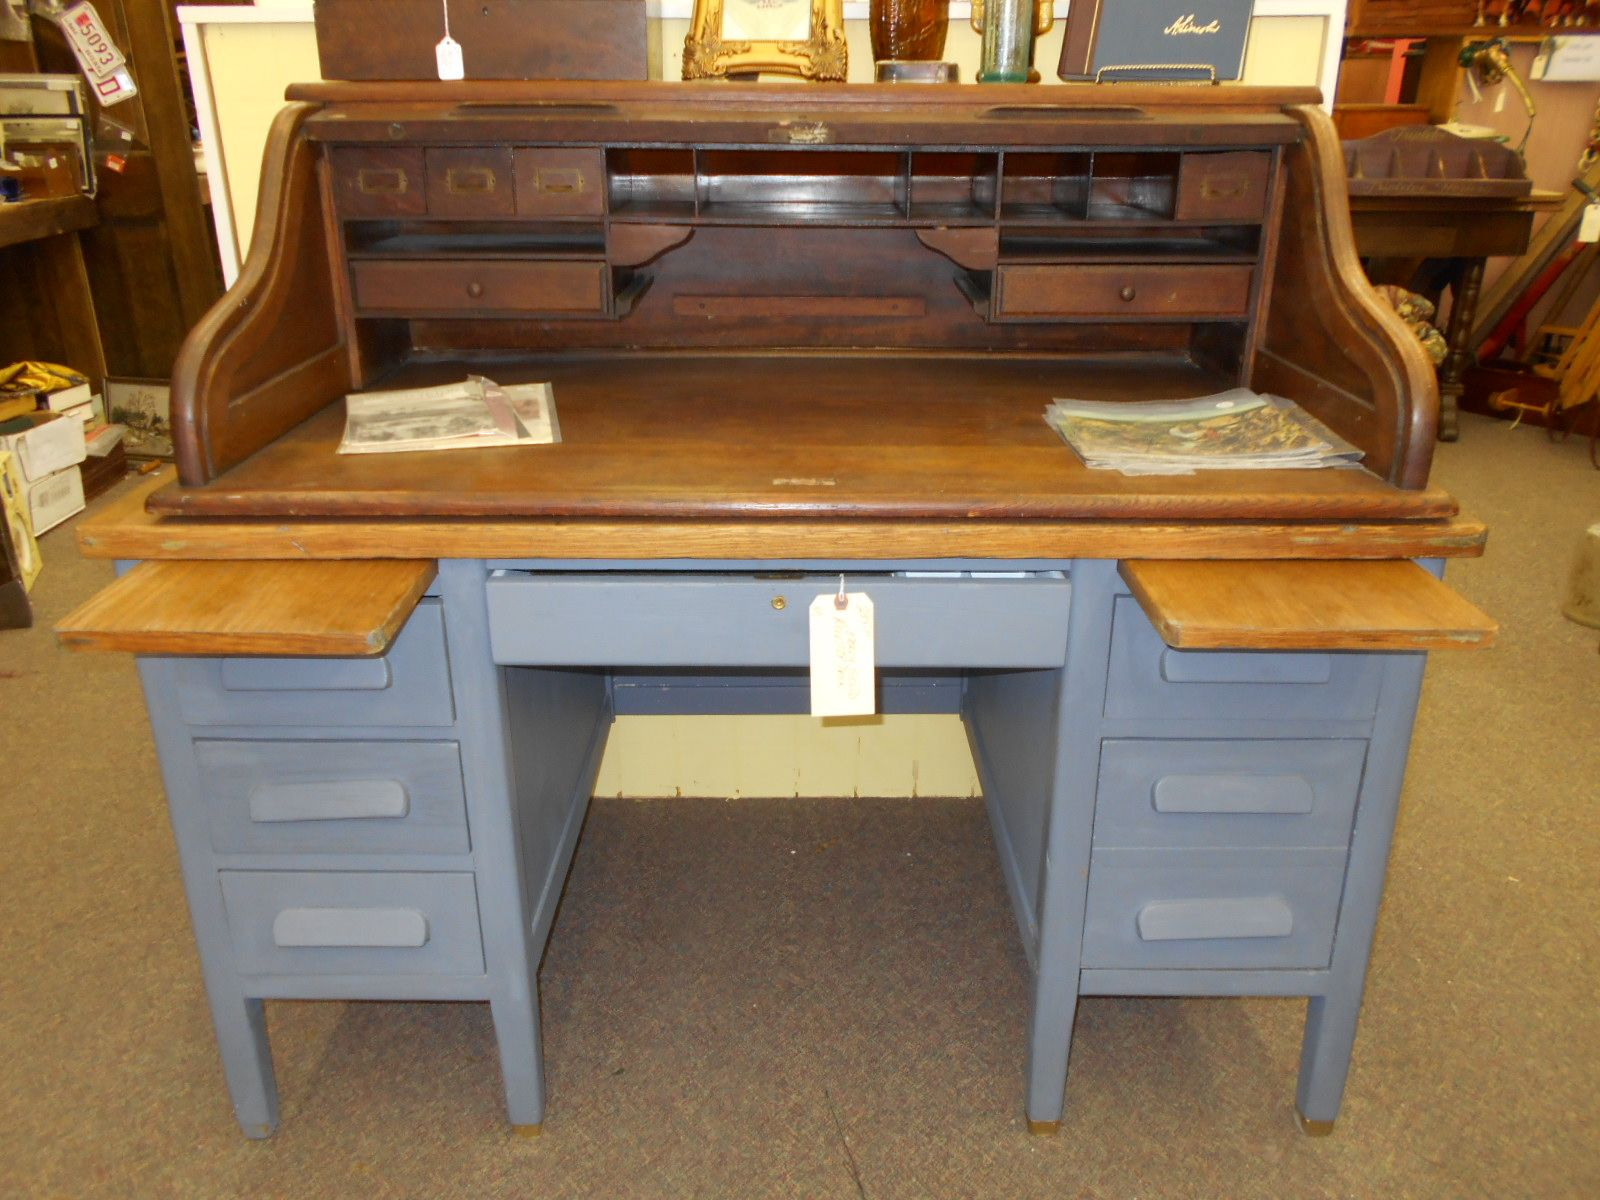 Antique Teacher S Desk Hand Painted In Grey Blue Chalk Paint Roll Top Is Separate